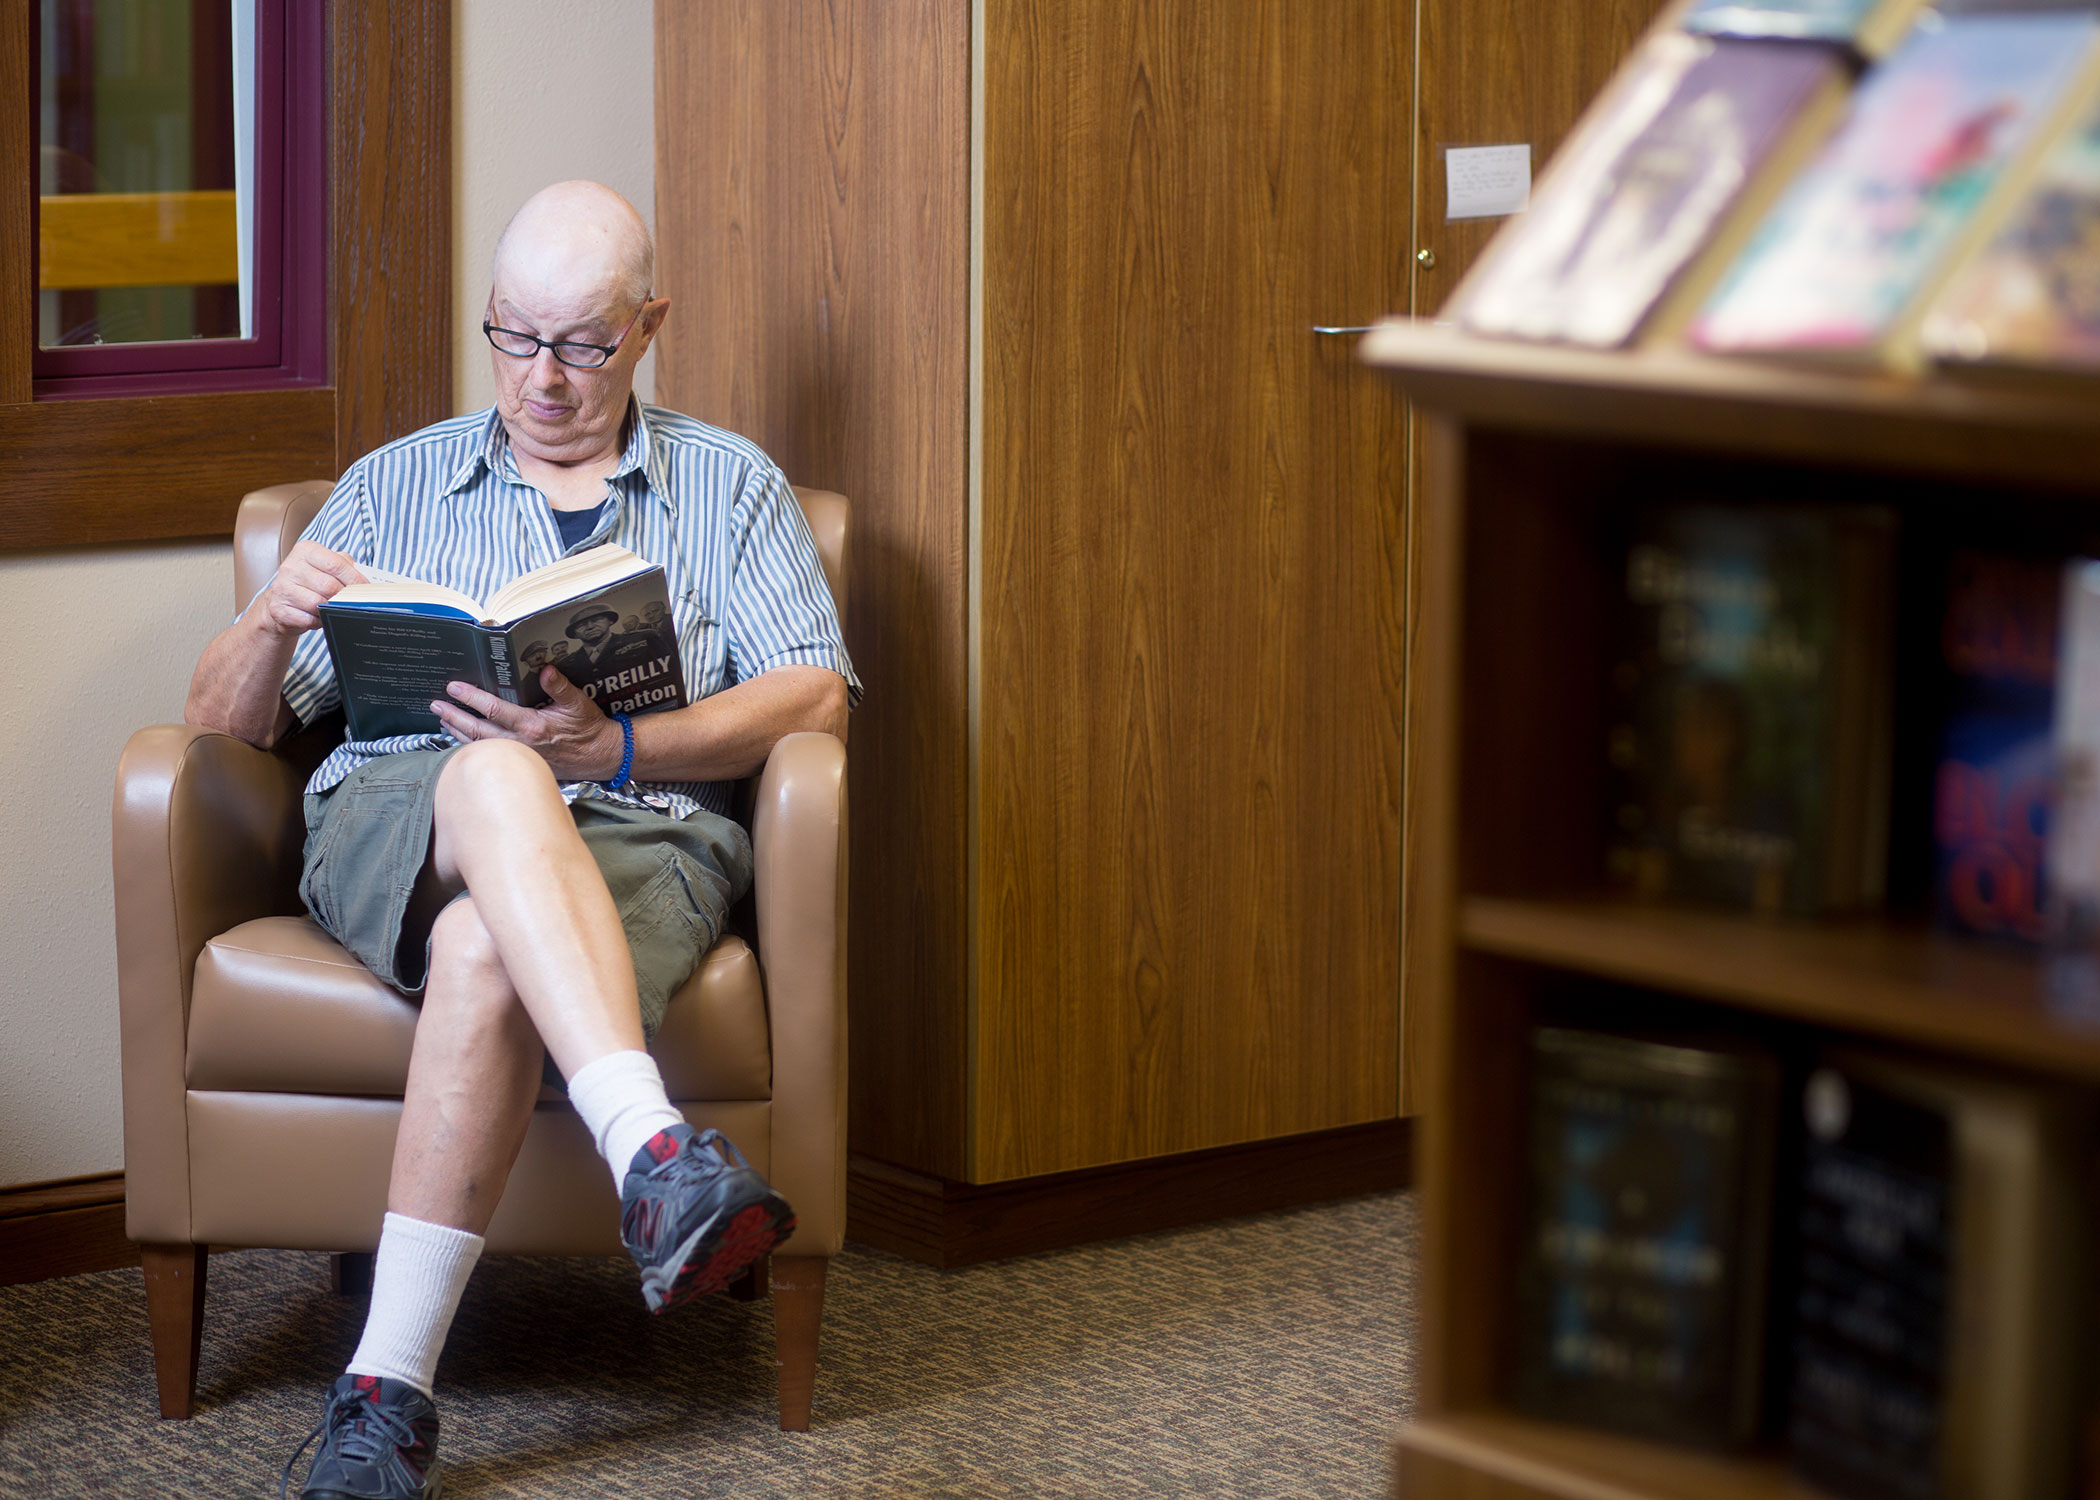 Male resident  with shorts and glasses sitting in a chair at the library reading a book